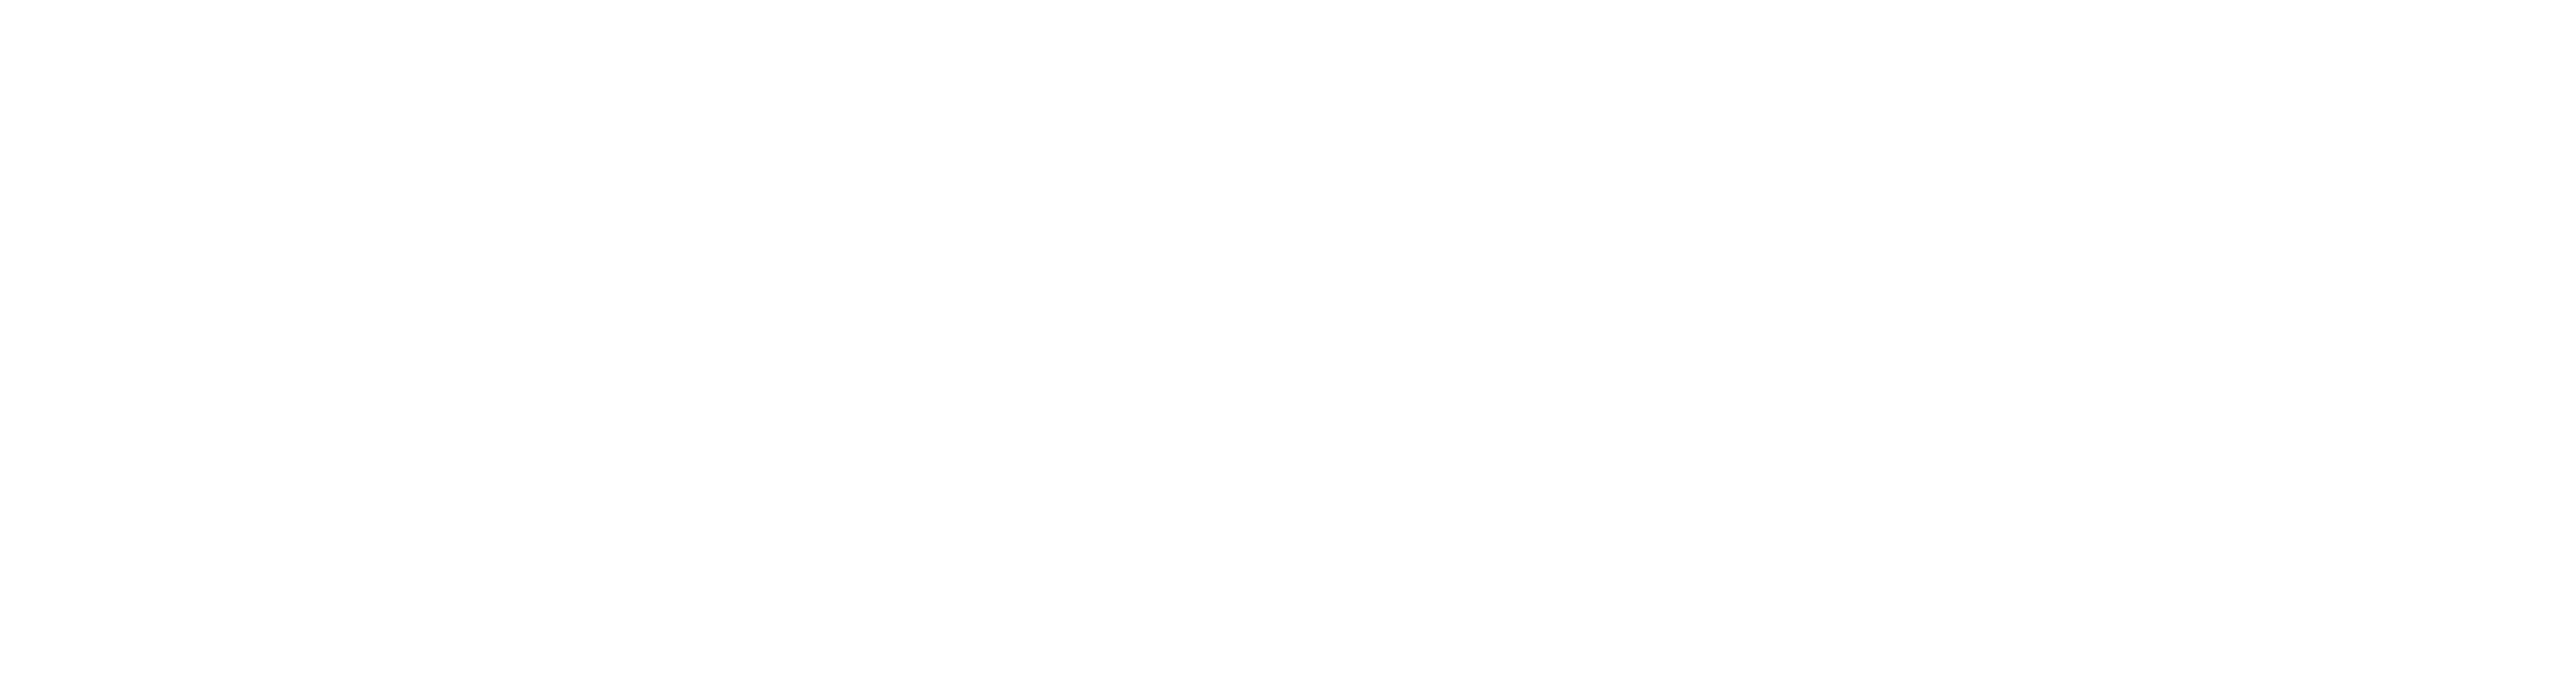 Jooster